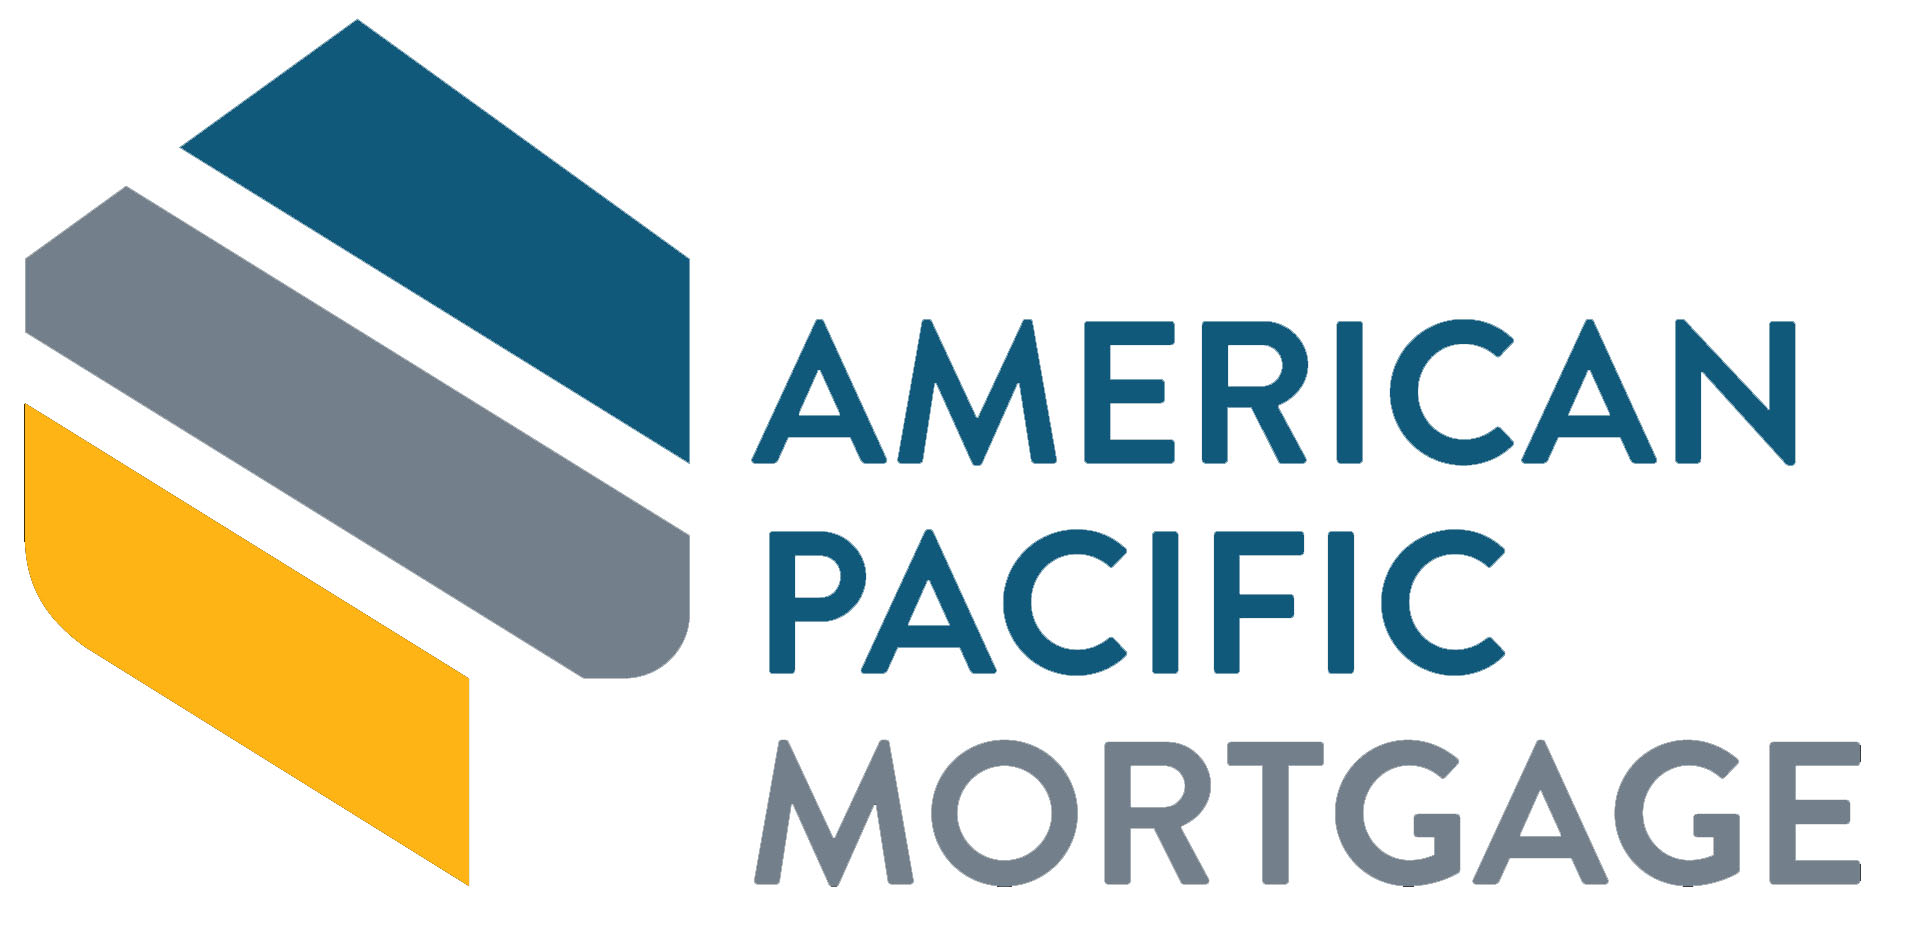 D American Pacific Mortgage